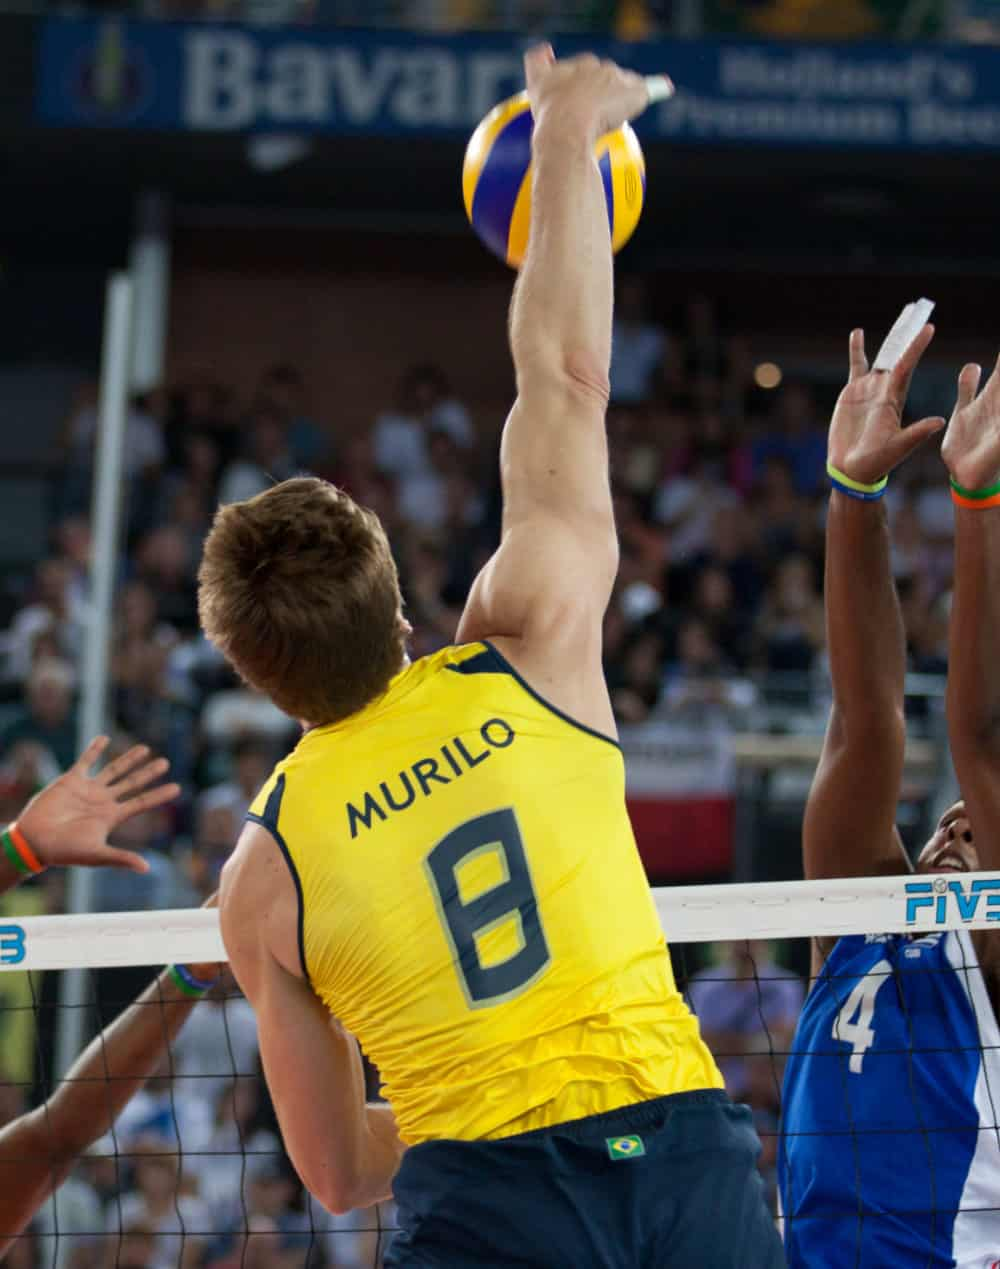 Male volleyball player spiking a ball over the net